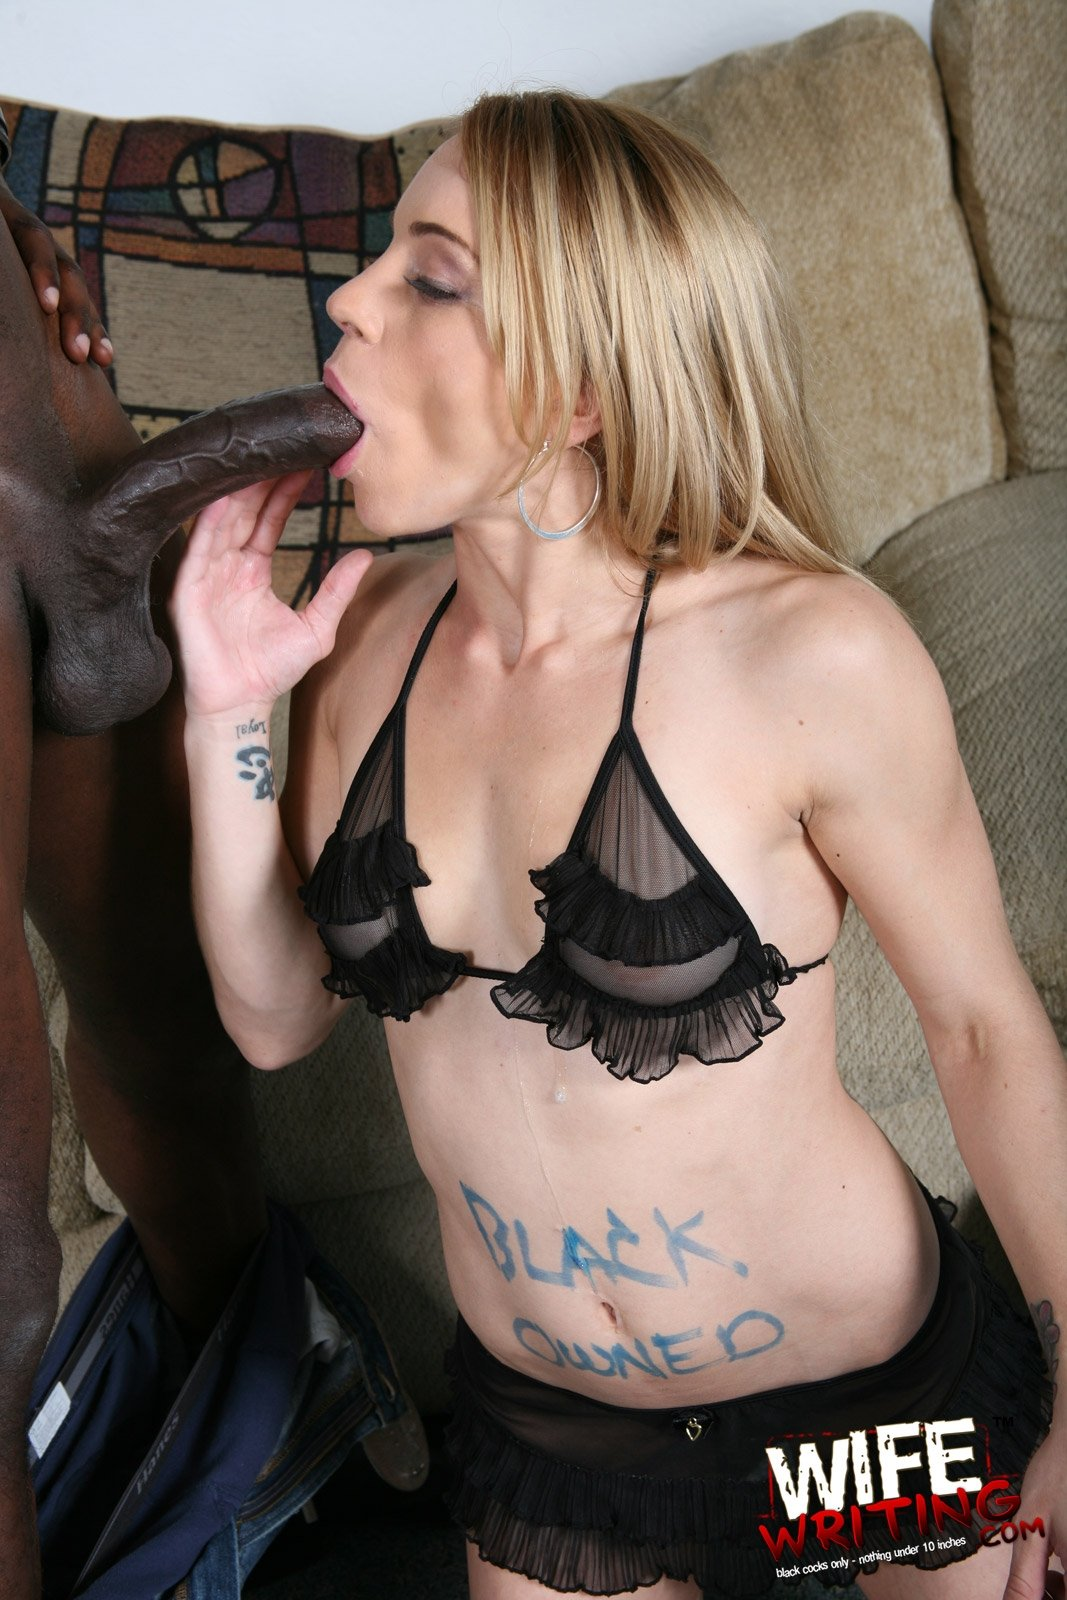 interracial cuckold xnxx